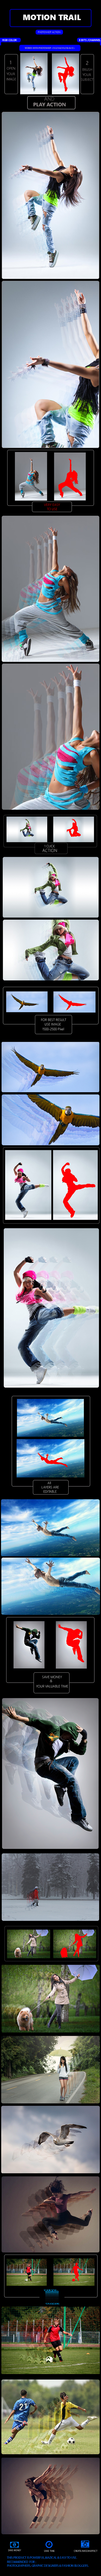 Motion Trail :: Photoshop Action - Photo Effects Actions